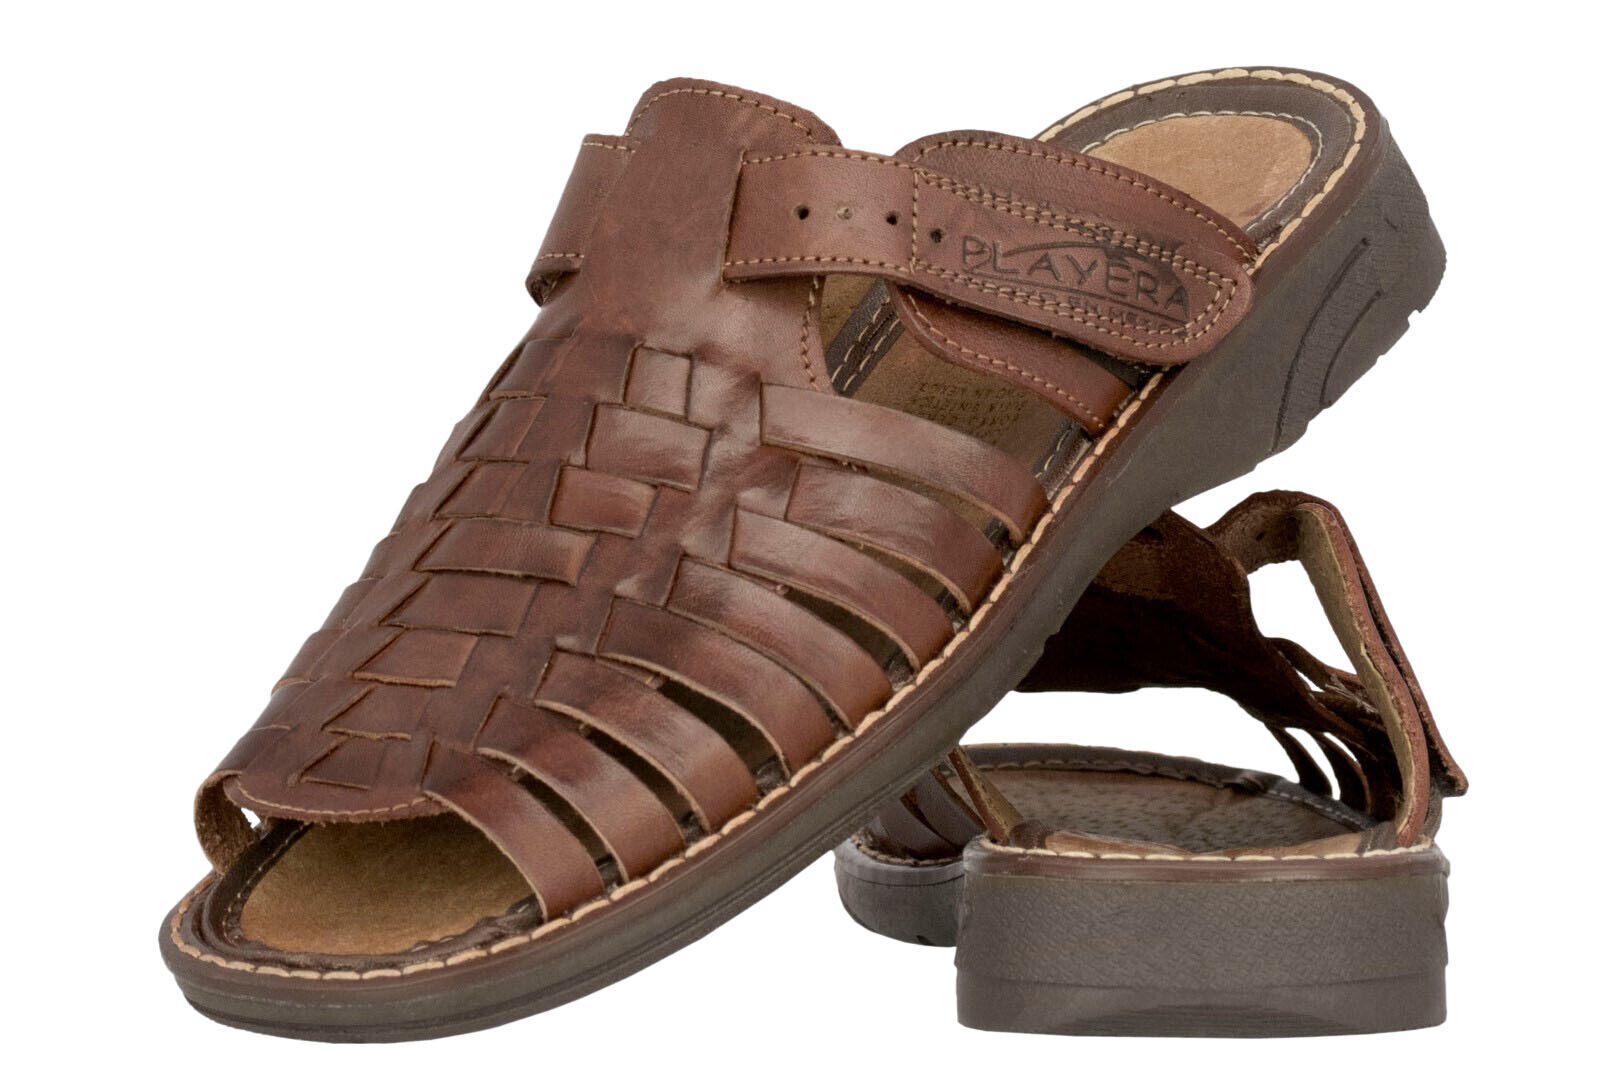 Mens Cognac Authentic Mexican Huaraches Sandals Genuine Woven Leather Slip On